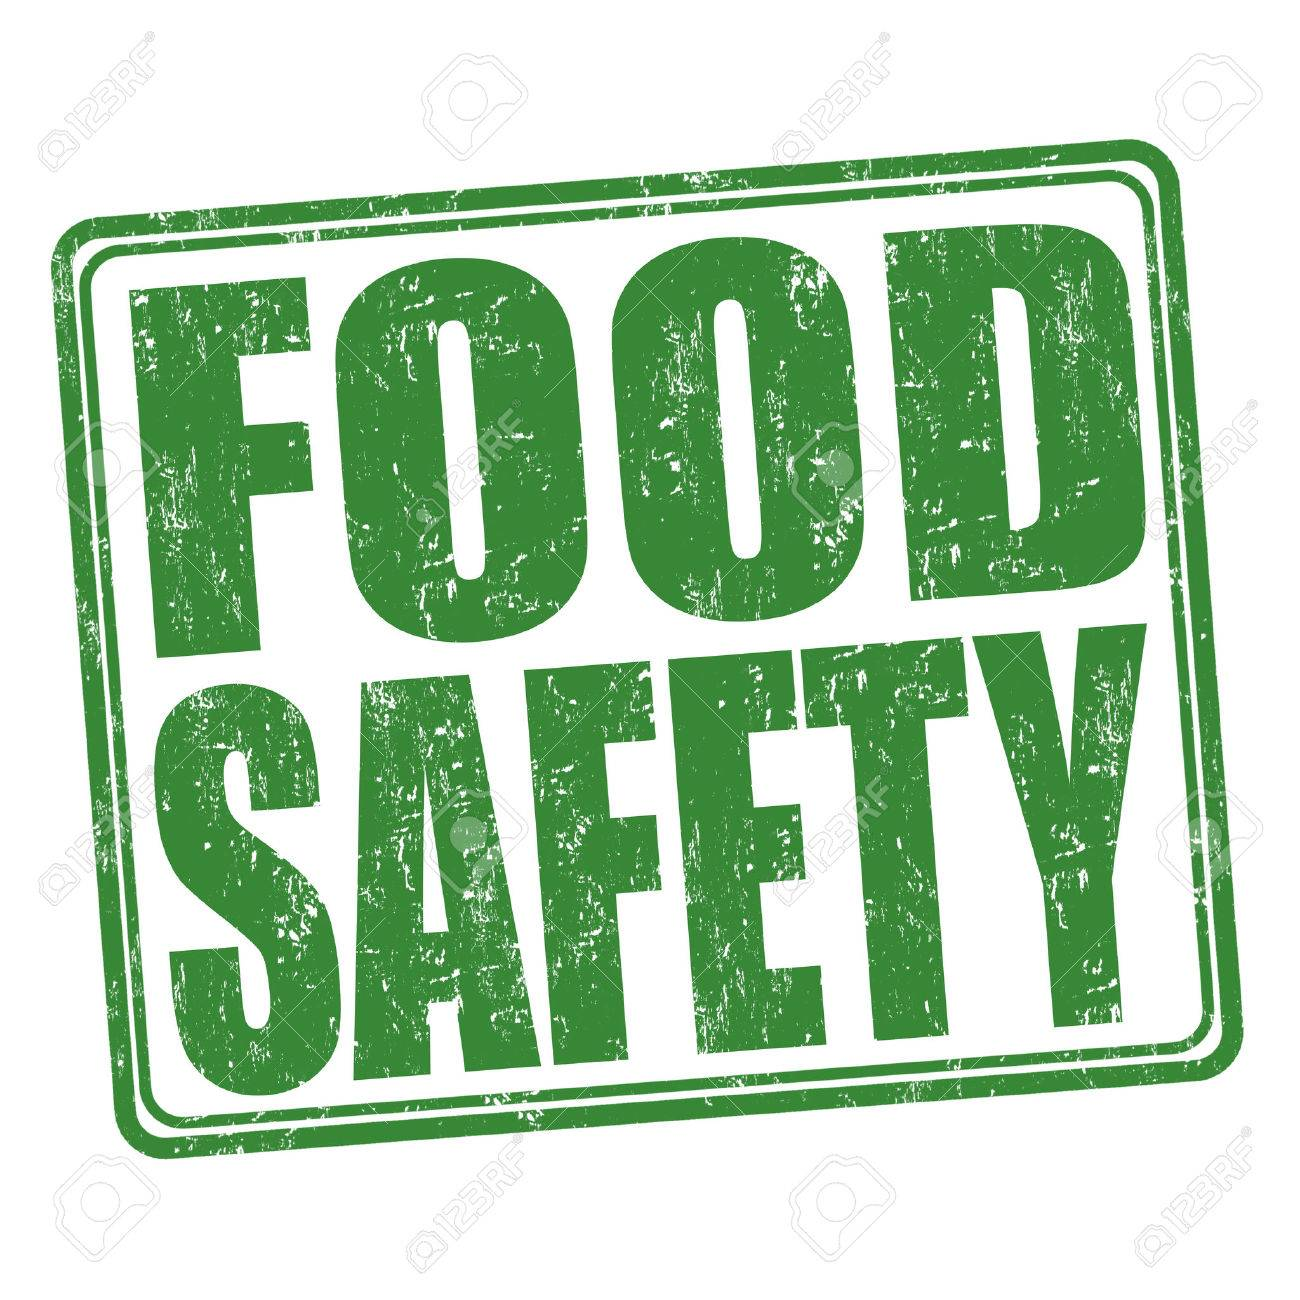 food safety clipart free intended for your inspiration.